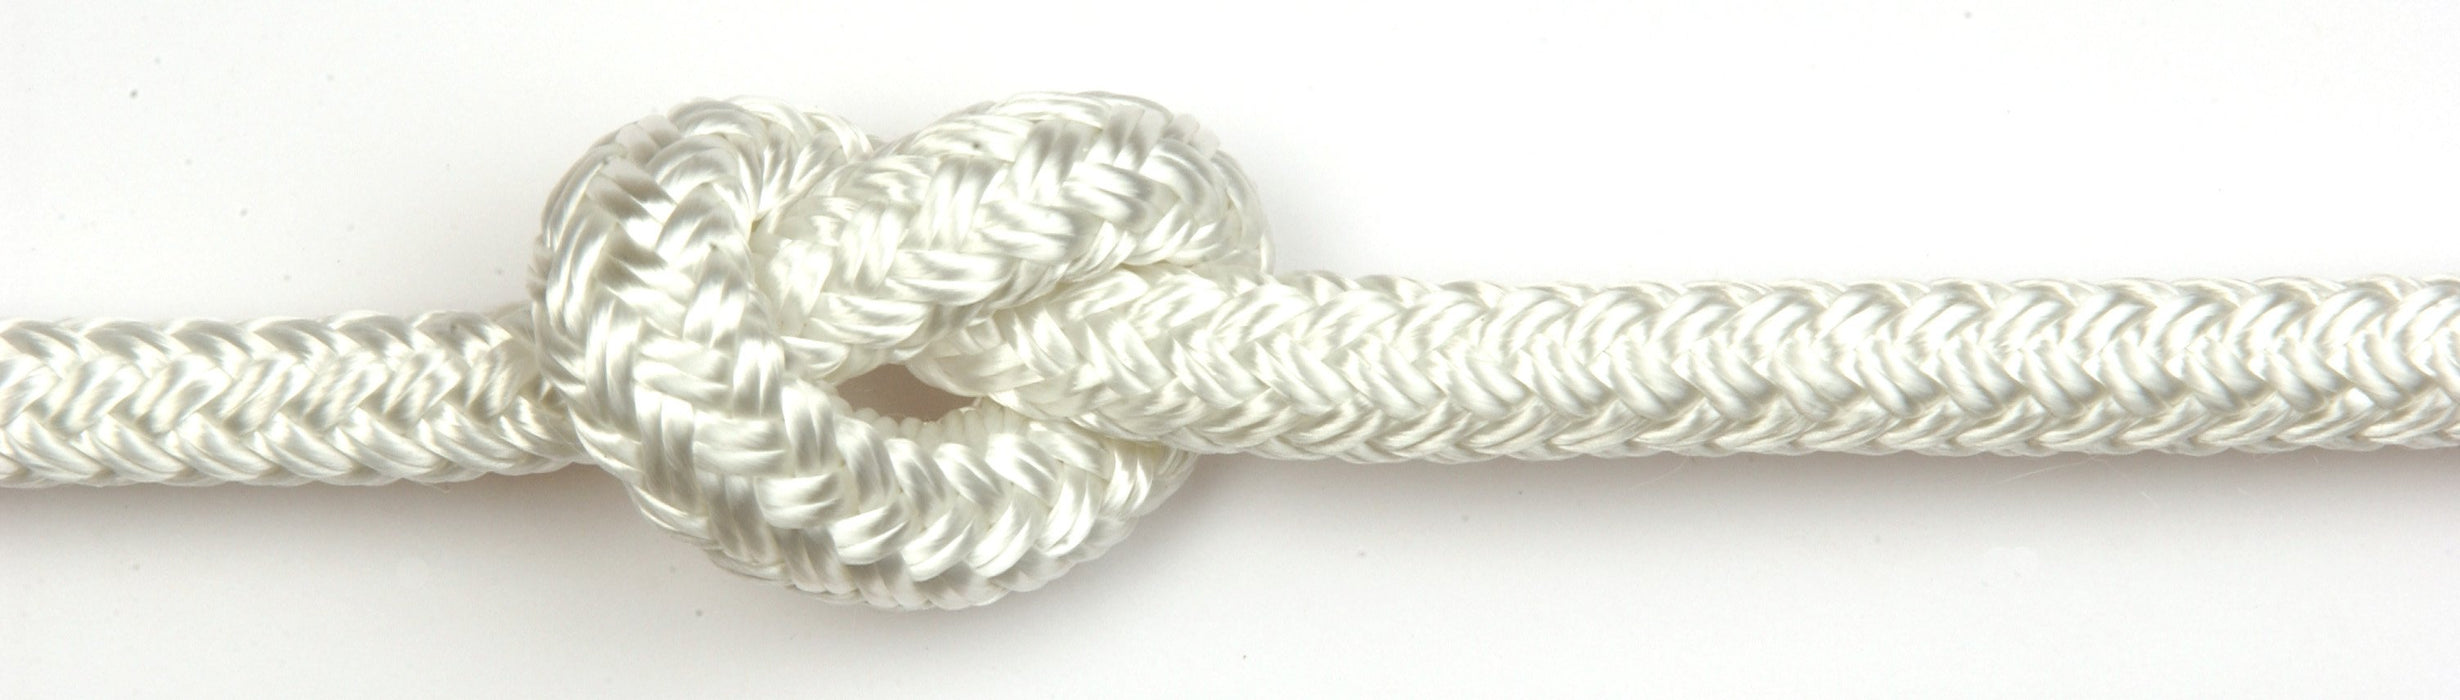 Braid-on-braid polyester rope